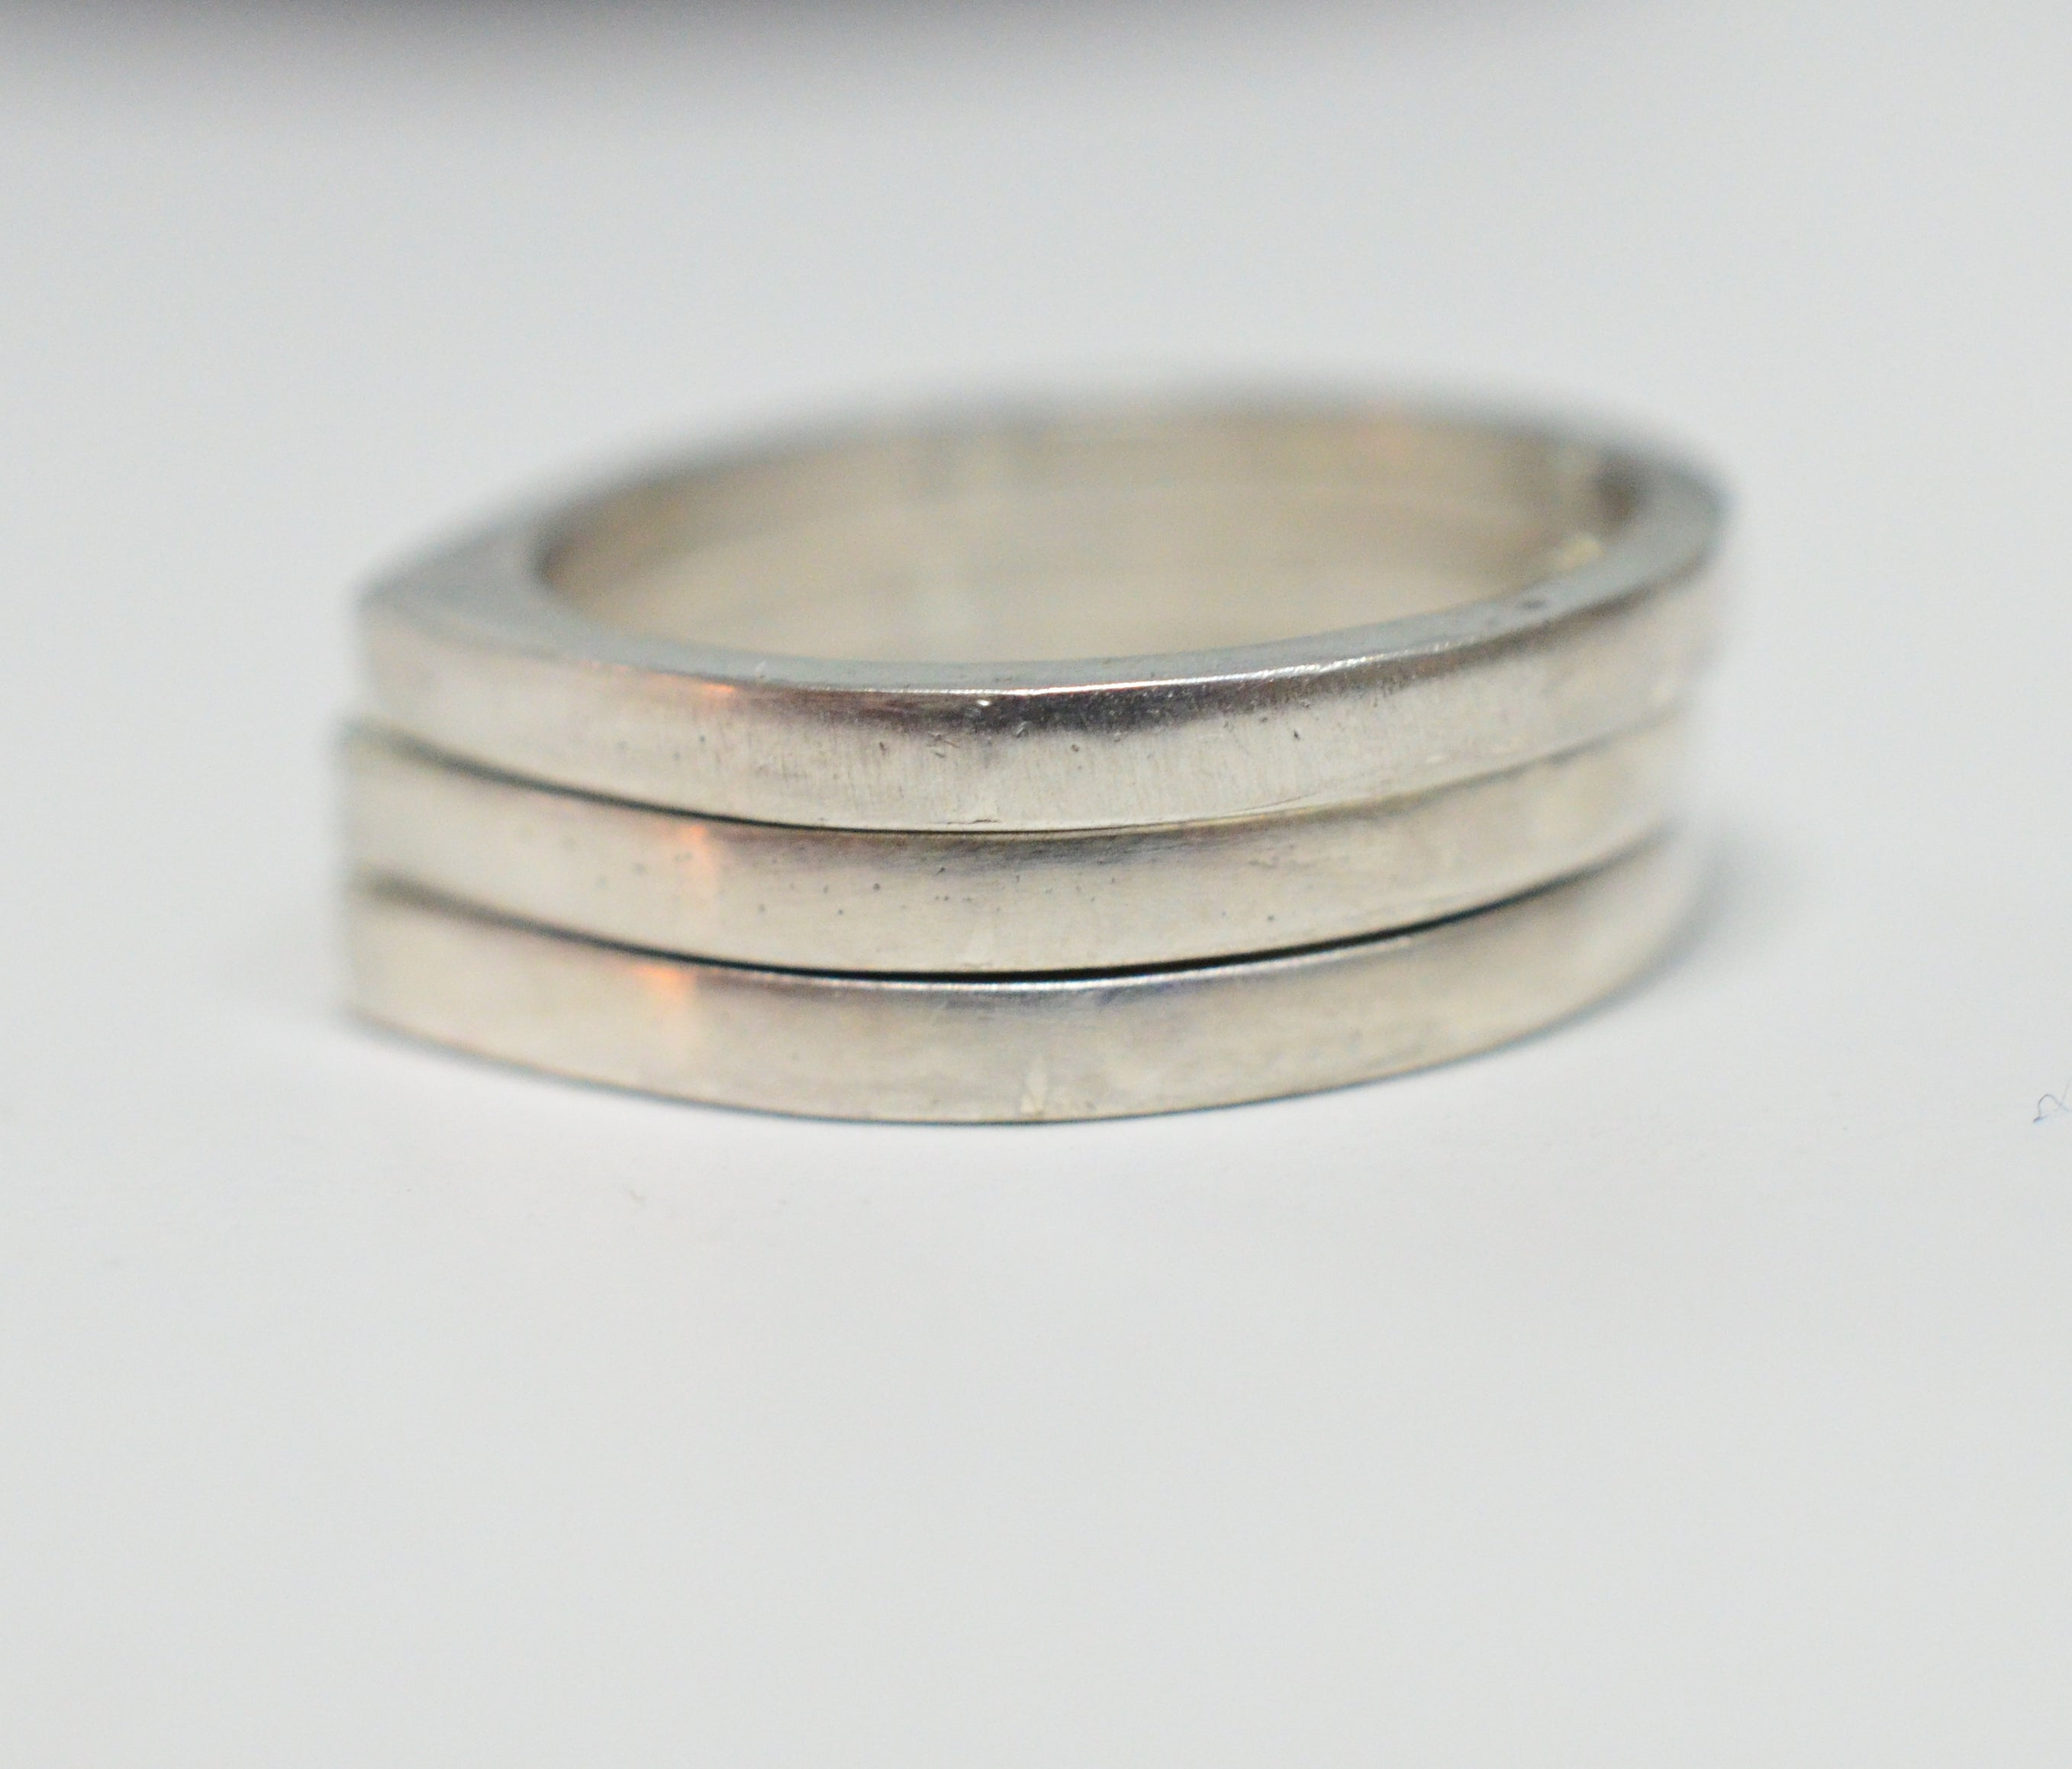 Silver thin ring for teenagers, young girls and women's in all ages. - AlmaJewelryShop